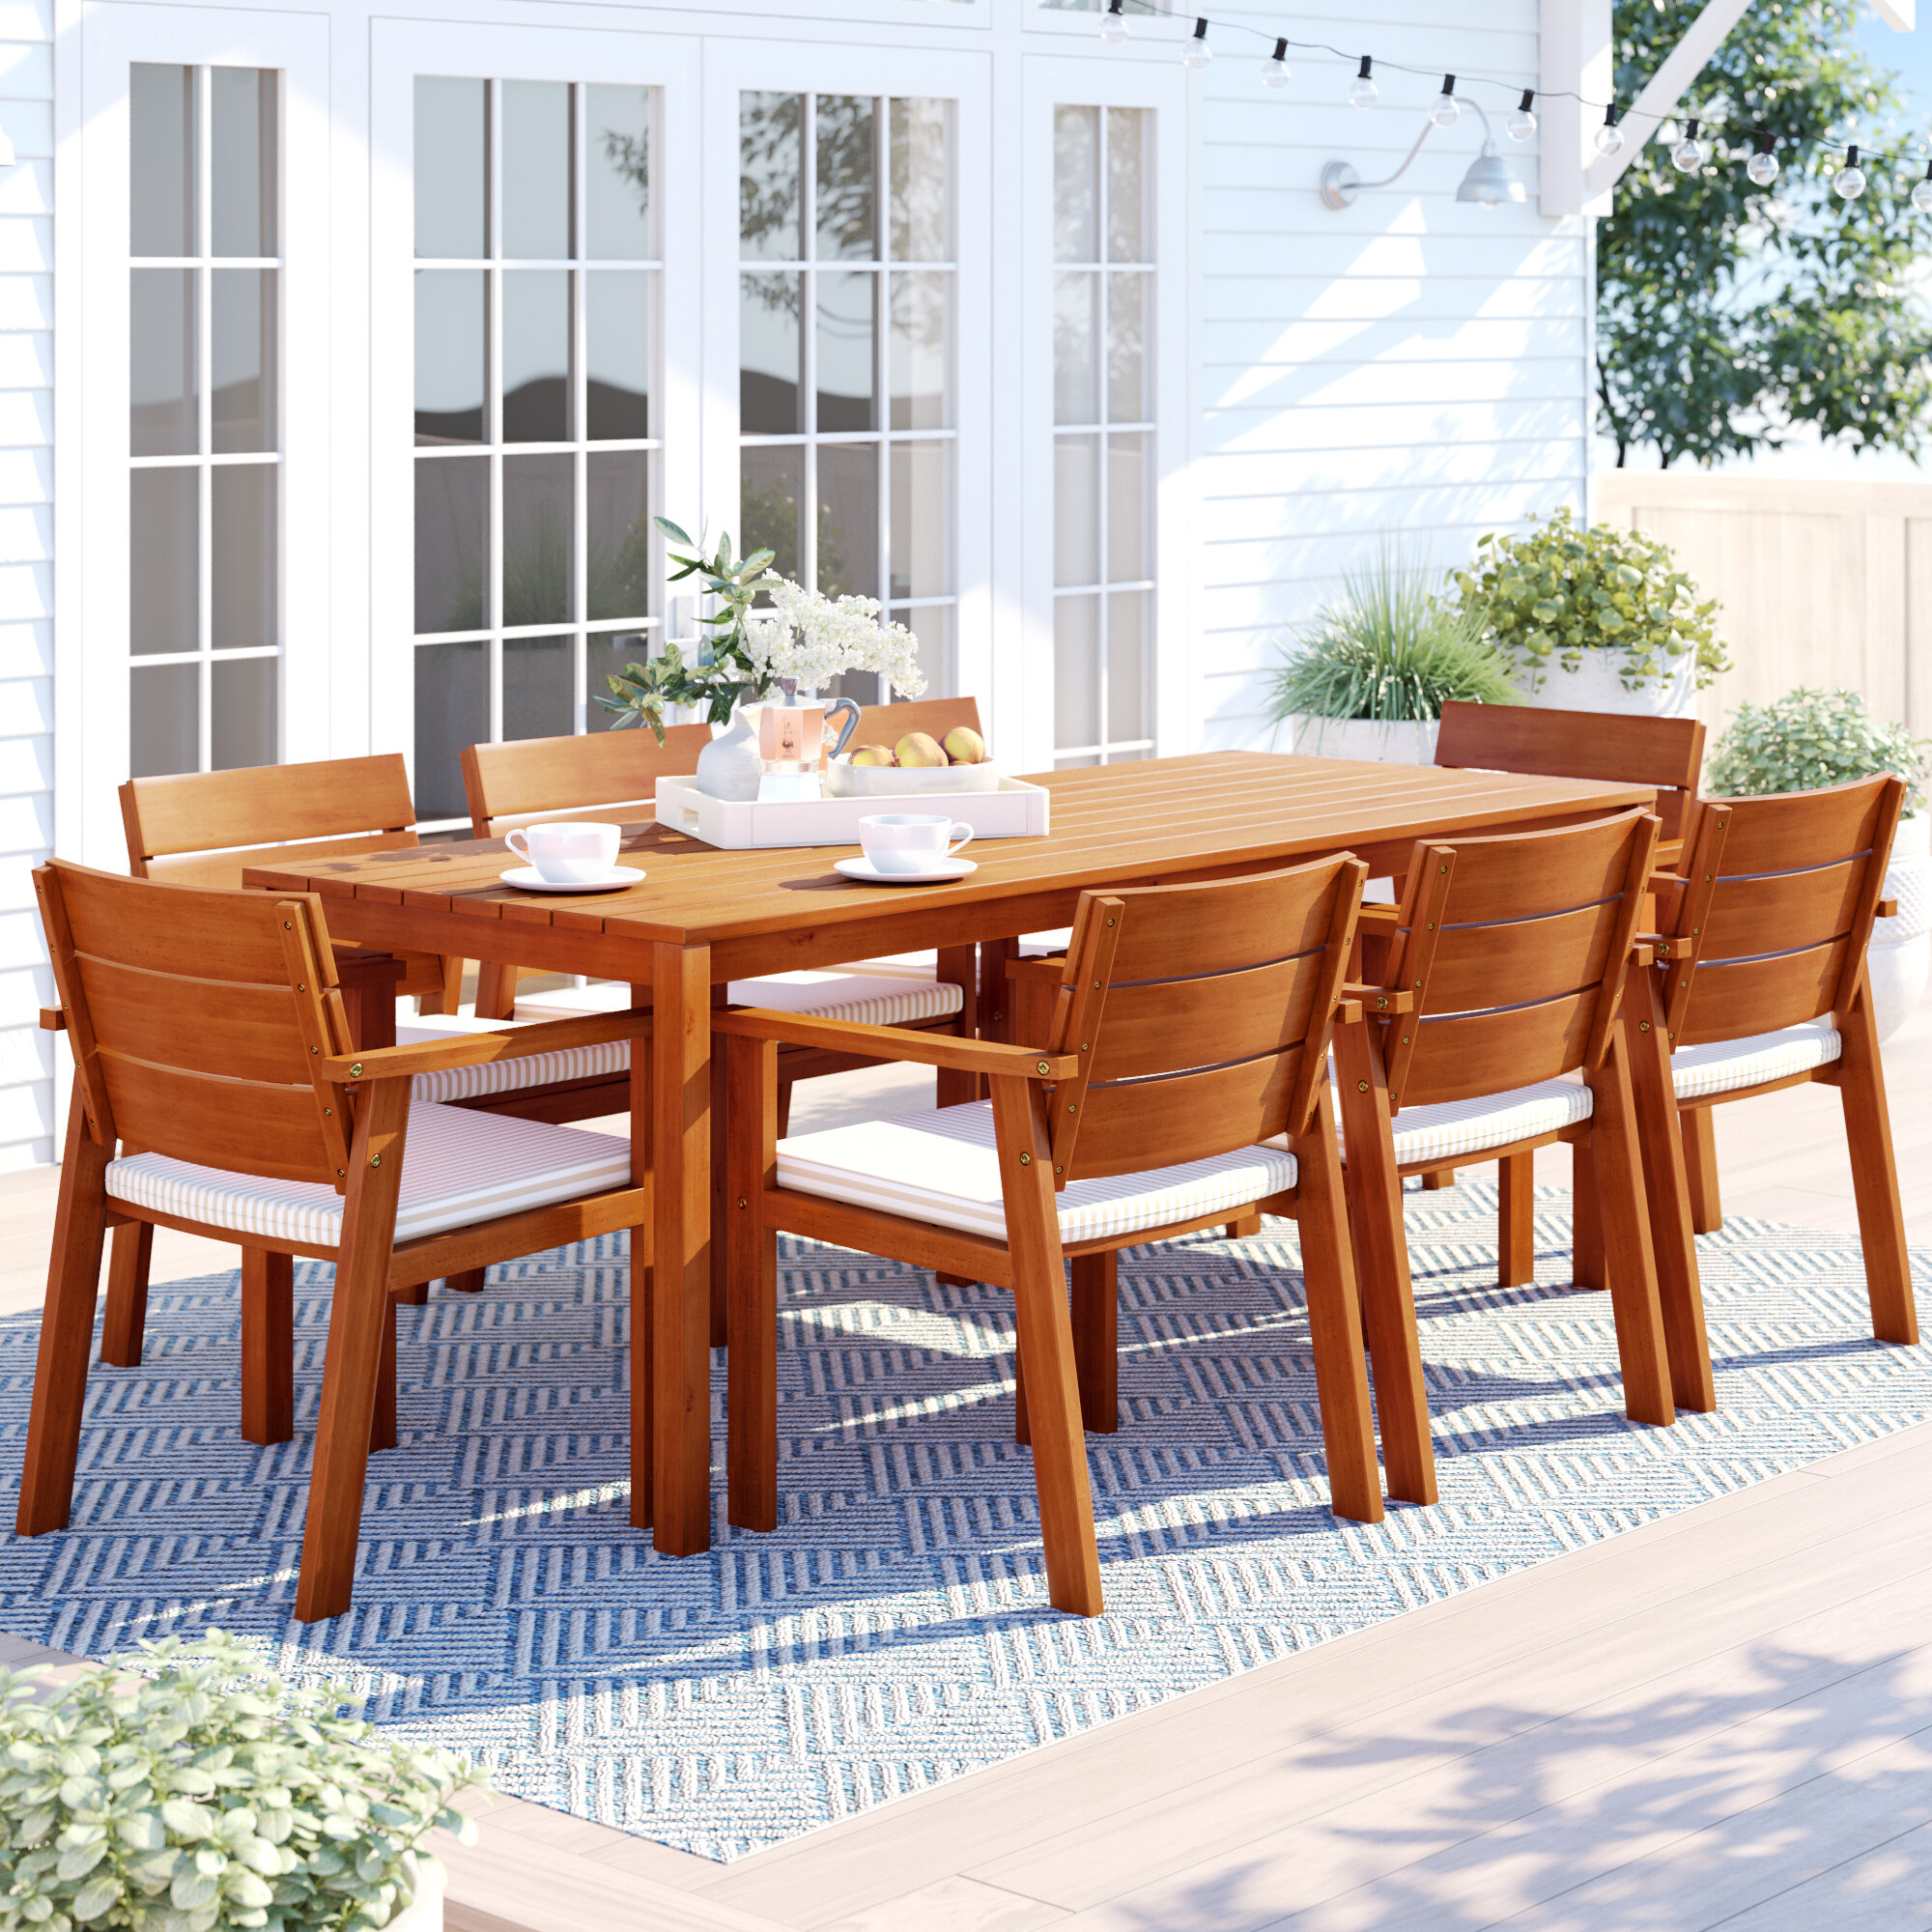 Sol 72 Outdoor Brighton 9 Piece Wood Dining Set With Cushions Reviews Wayfair